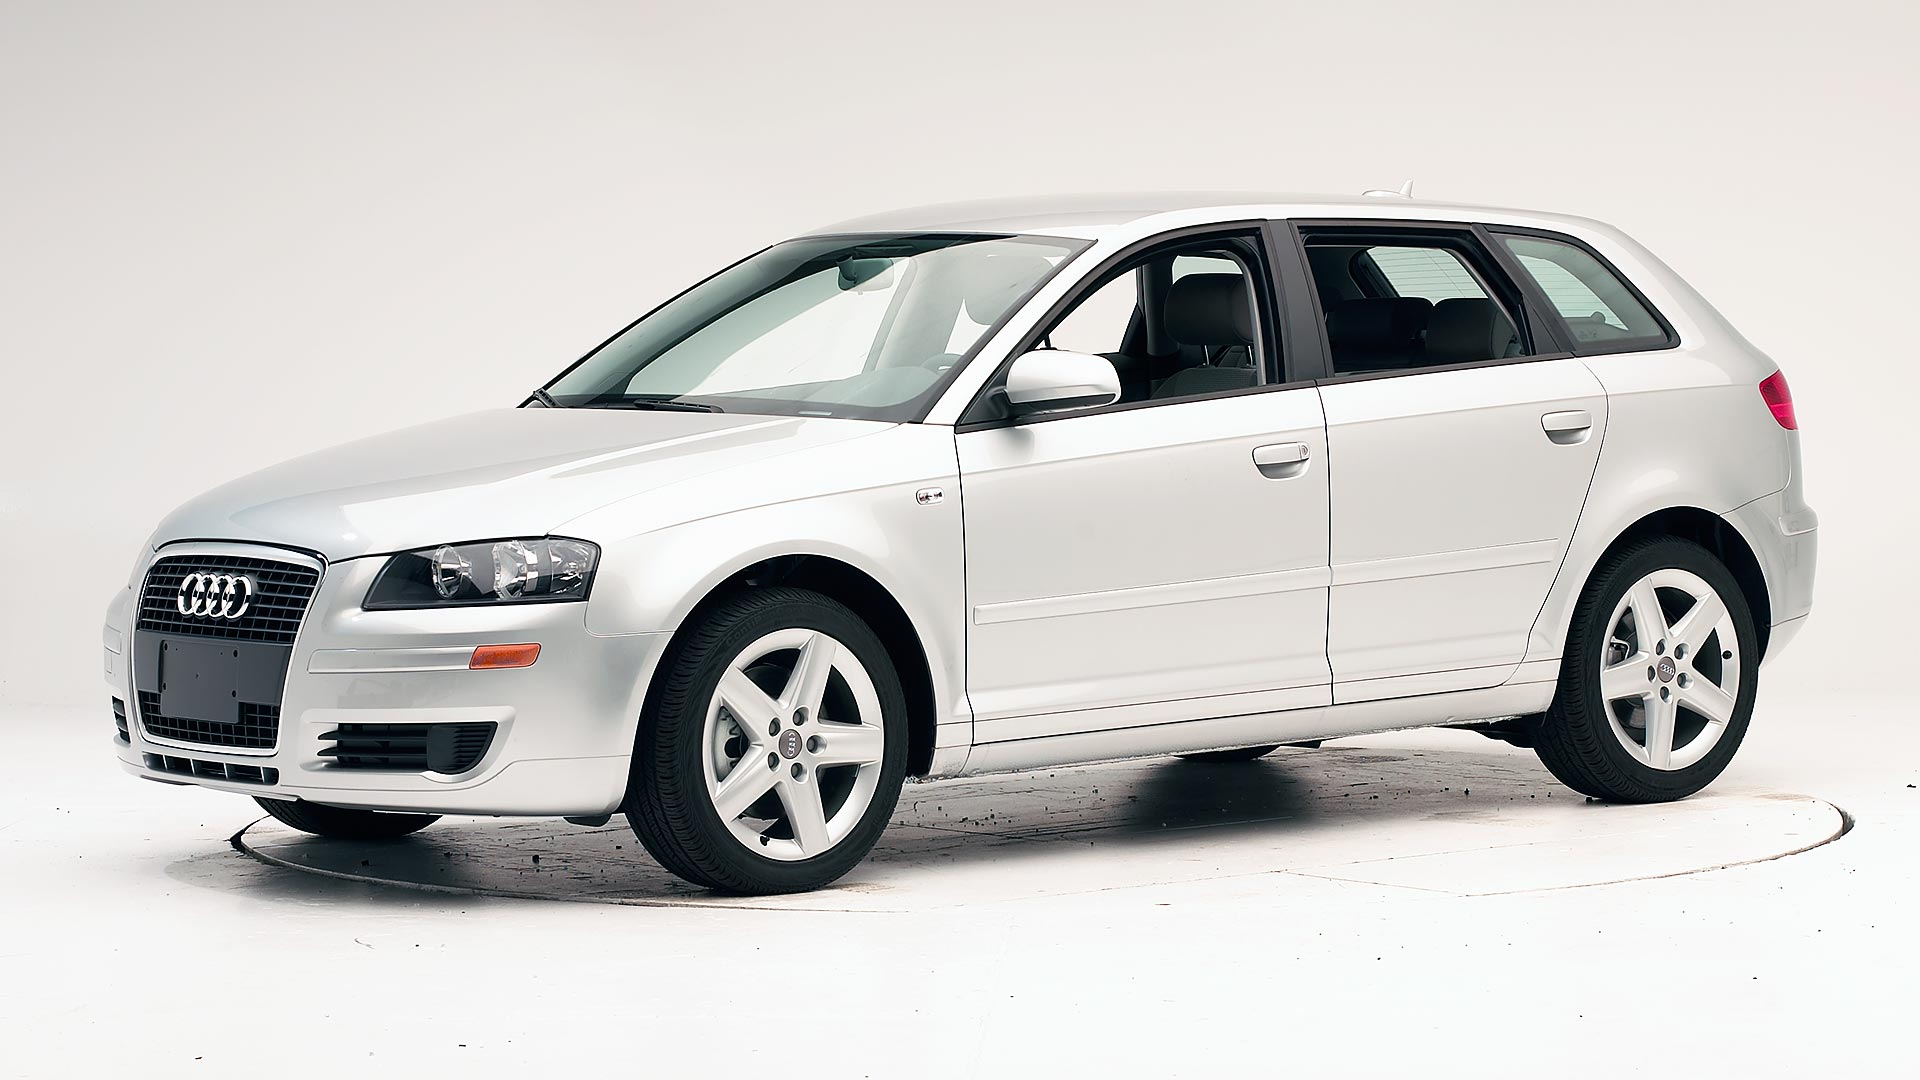 2008 Audi A3 4-door wagon